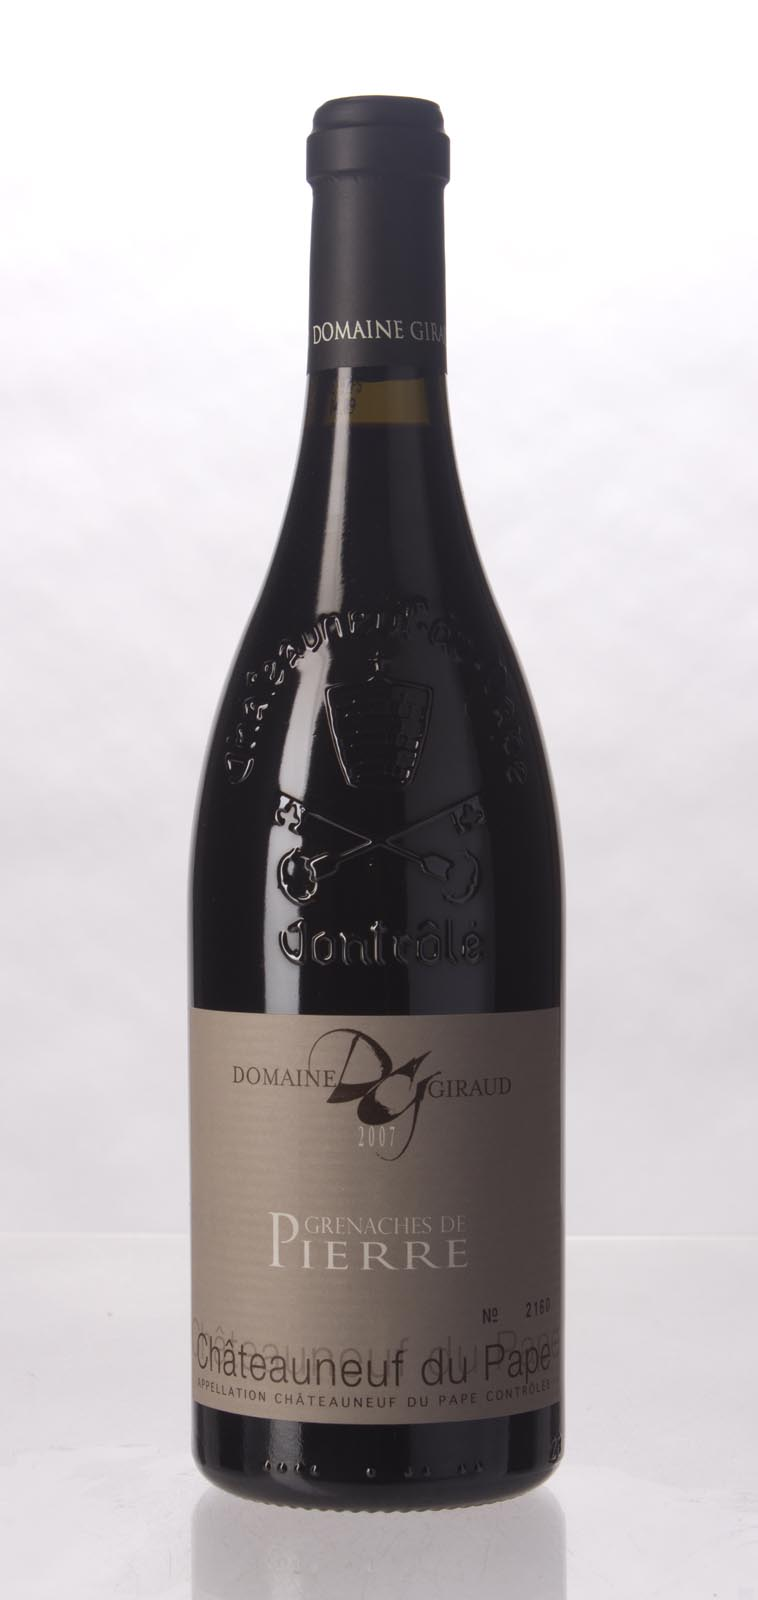 Domaine Giraud Chateauneuf du Pape Cuvee les Grenache de Pierre 2007,  (WA95+, ST94, WS96) from The BPW - Merchants of rare and fine wines.